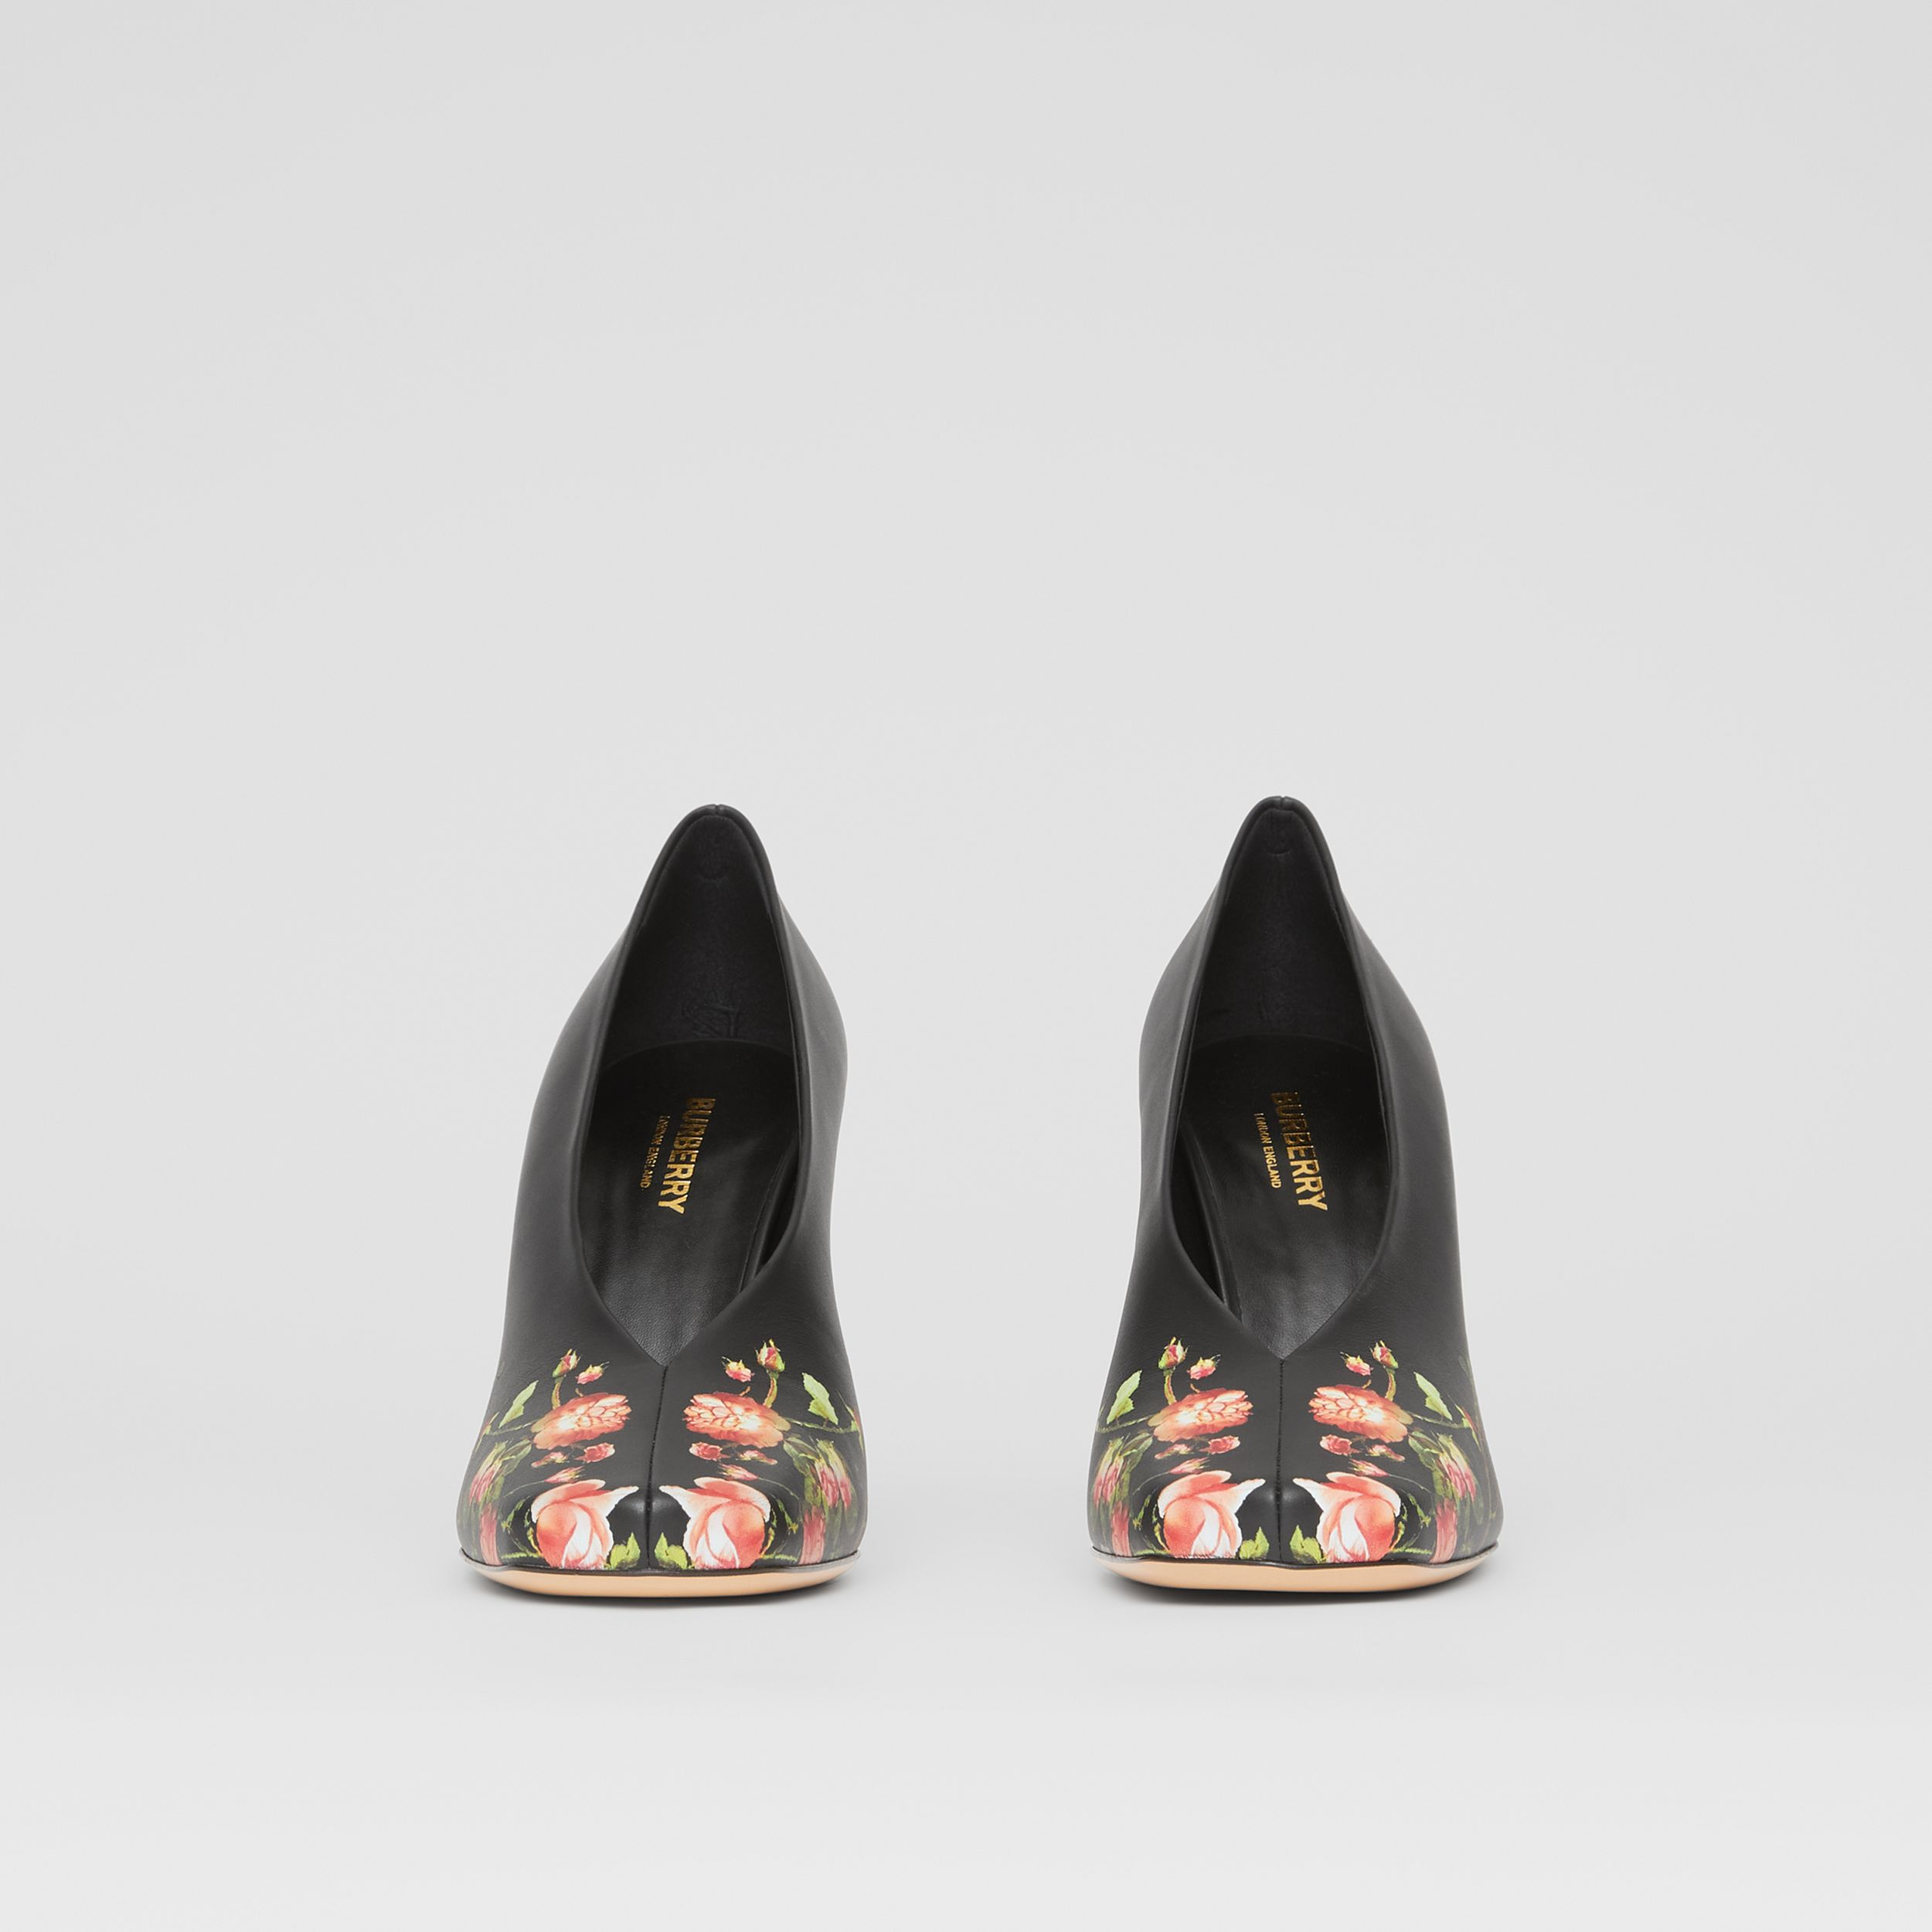 Rose Print Leather Sculptural Pumps in Floral - Women | Burberry - 4